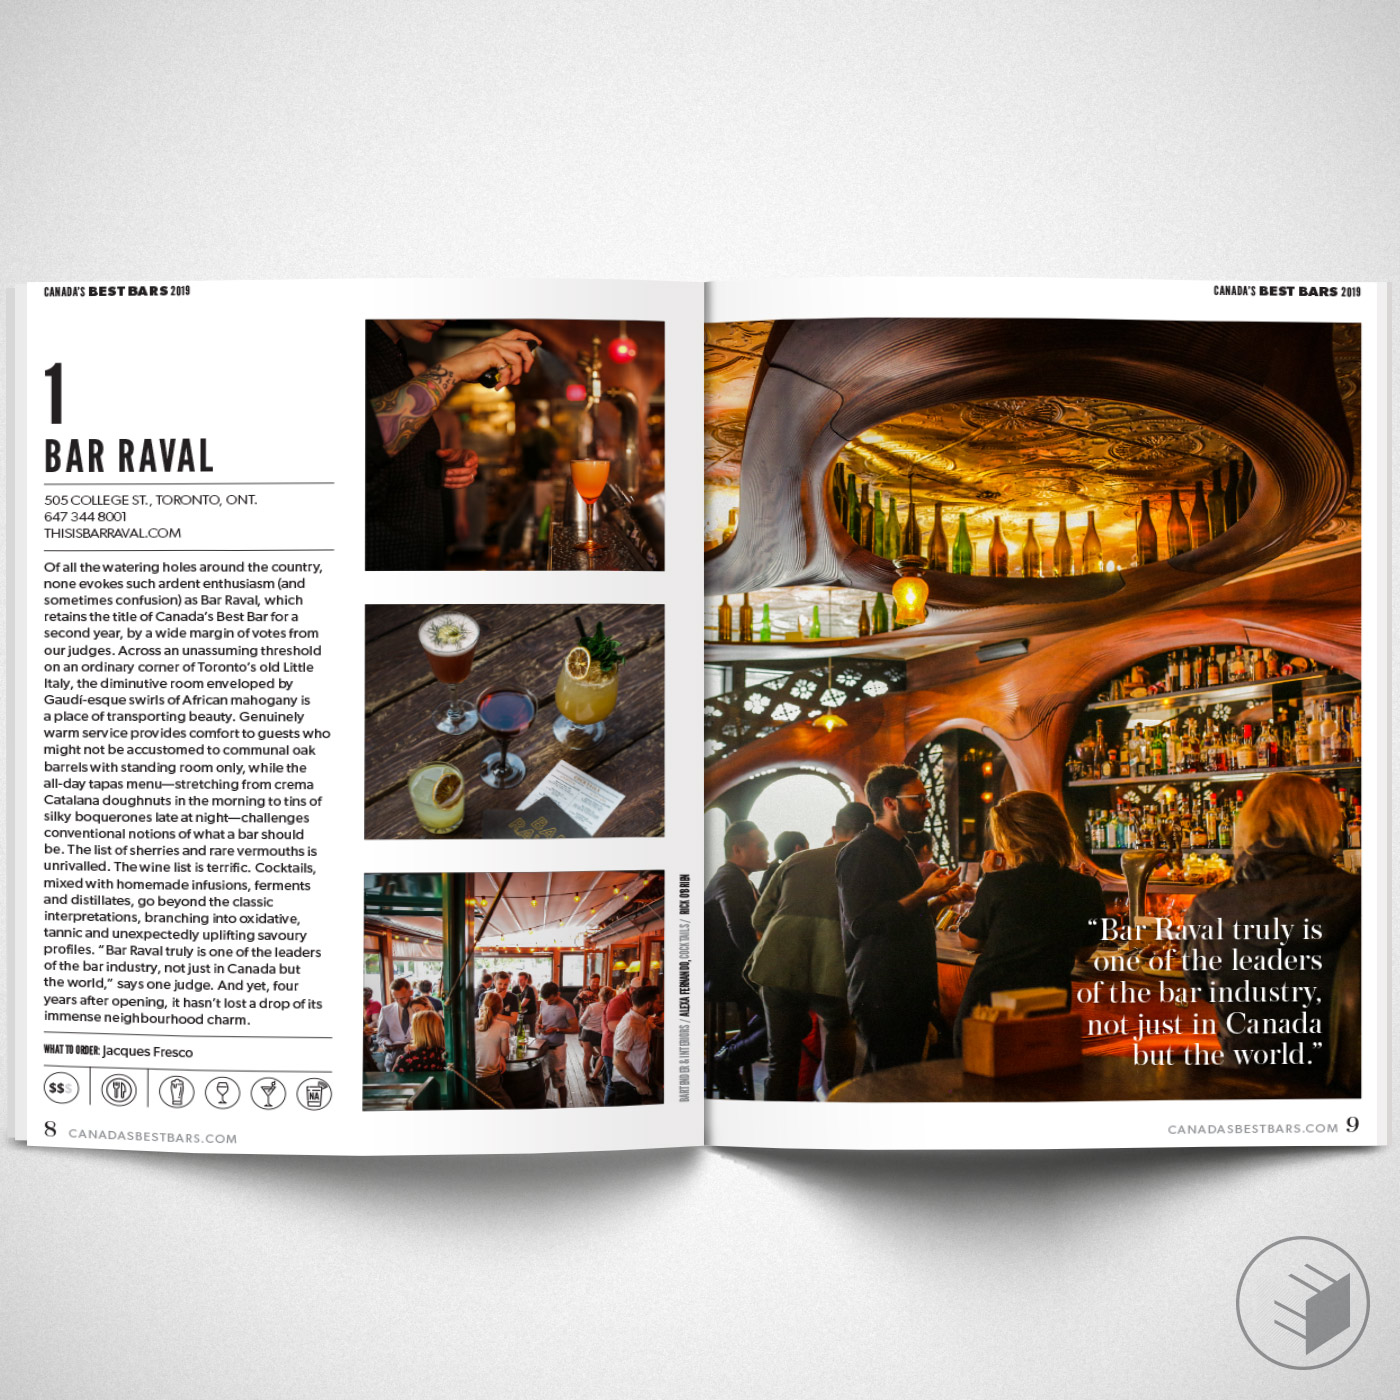 CANADA'S BEST BARS 2019 FEATURE